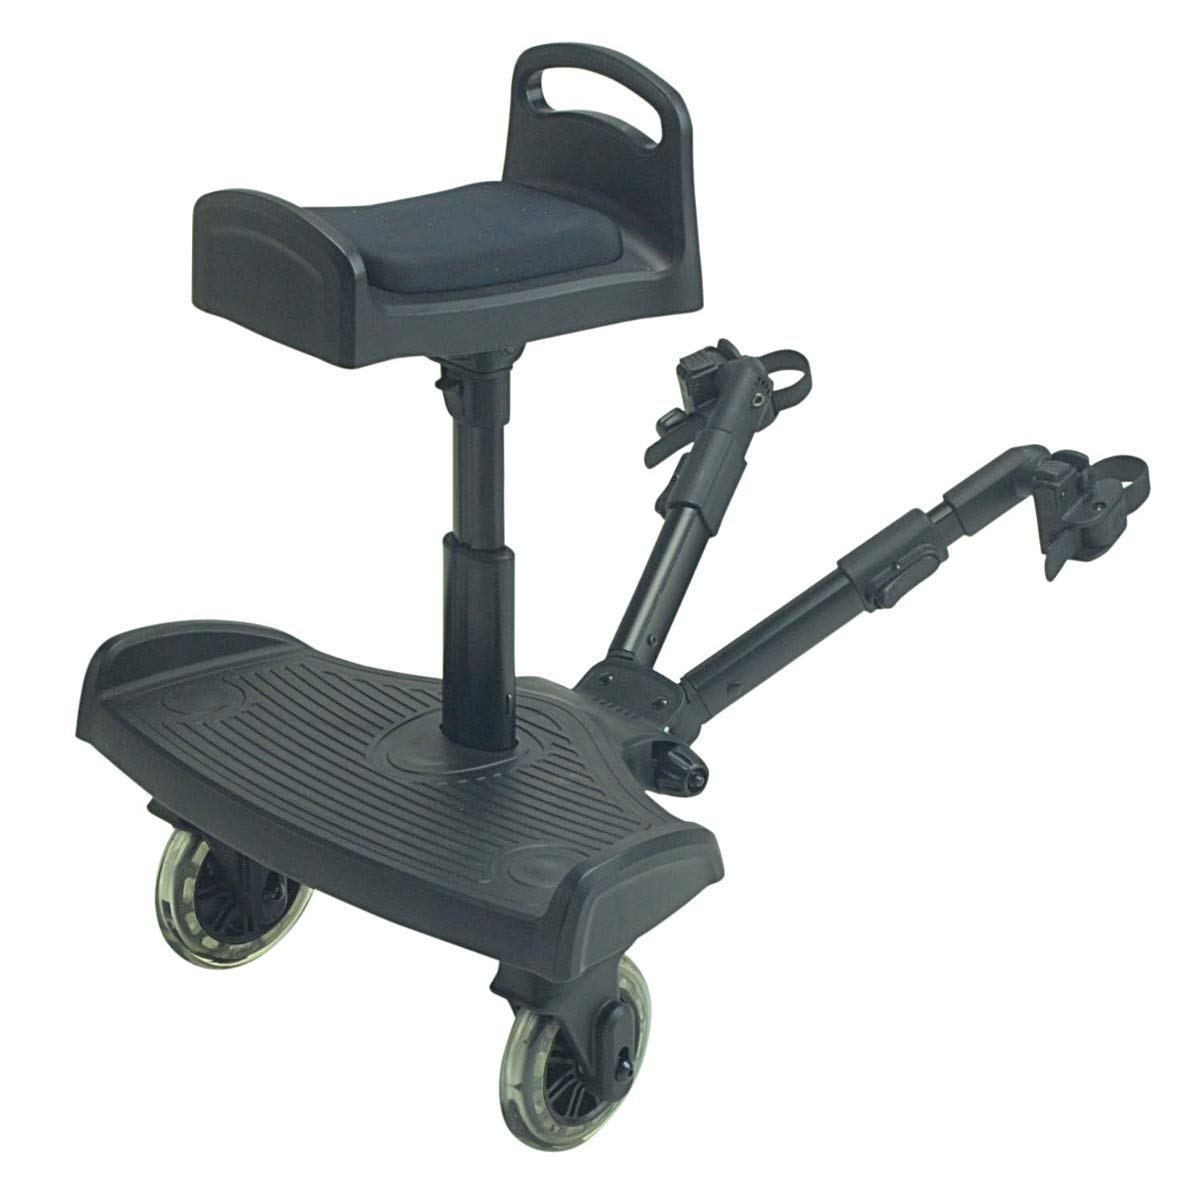 FYLORide On Board with Saddle Compatible with Baby Jogger City Mini GT Black